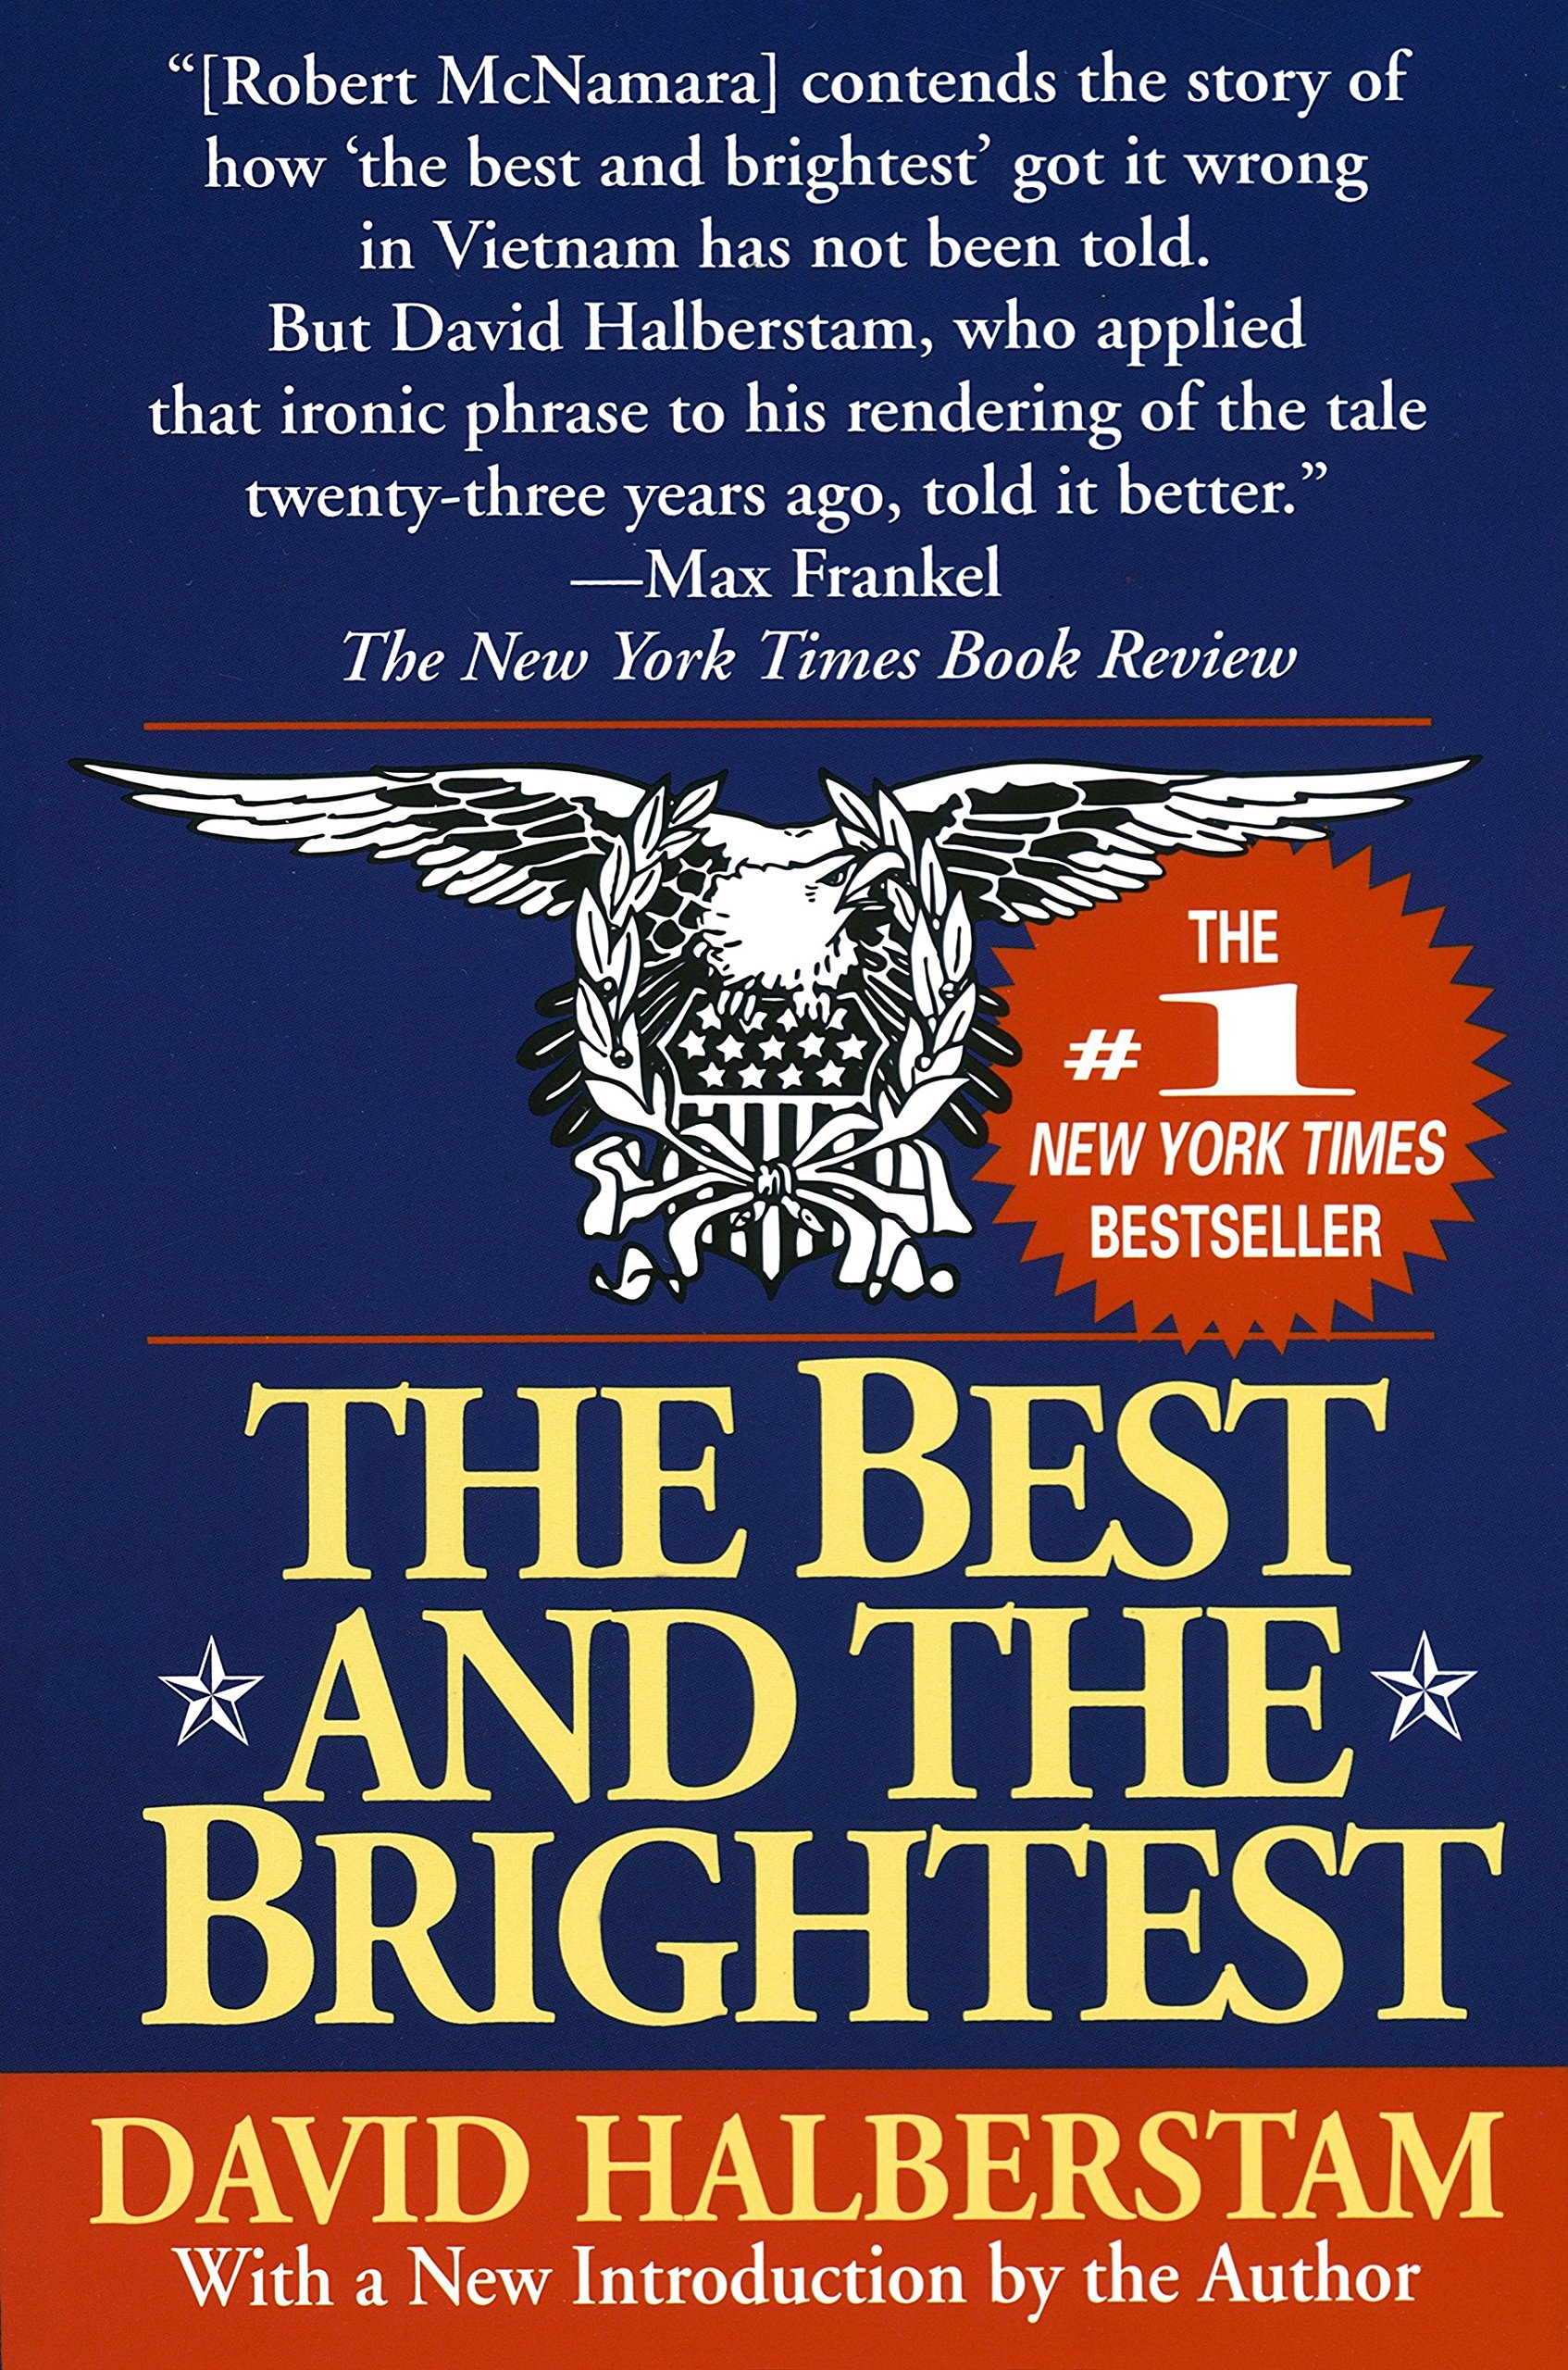 Best and the Brightest: Amazon.es: David Halberstam: Libros en idiomas extranjeros